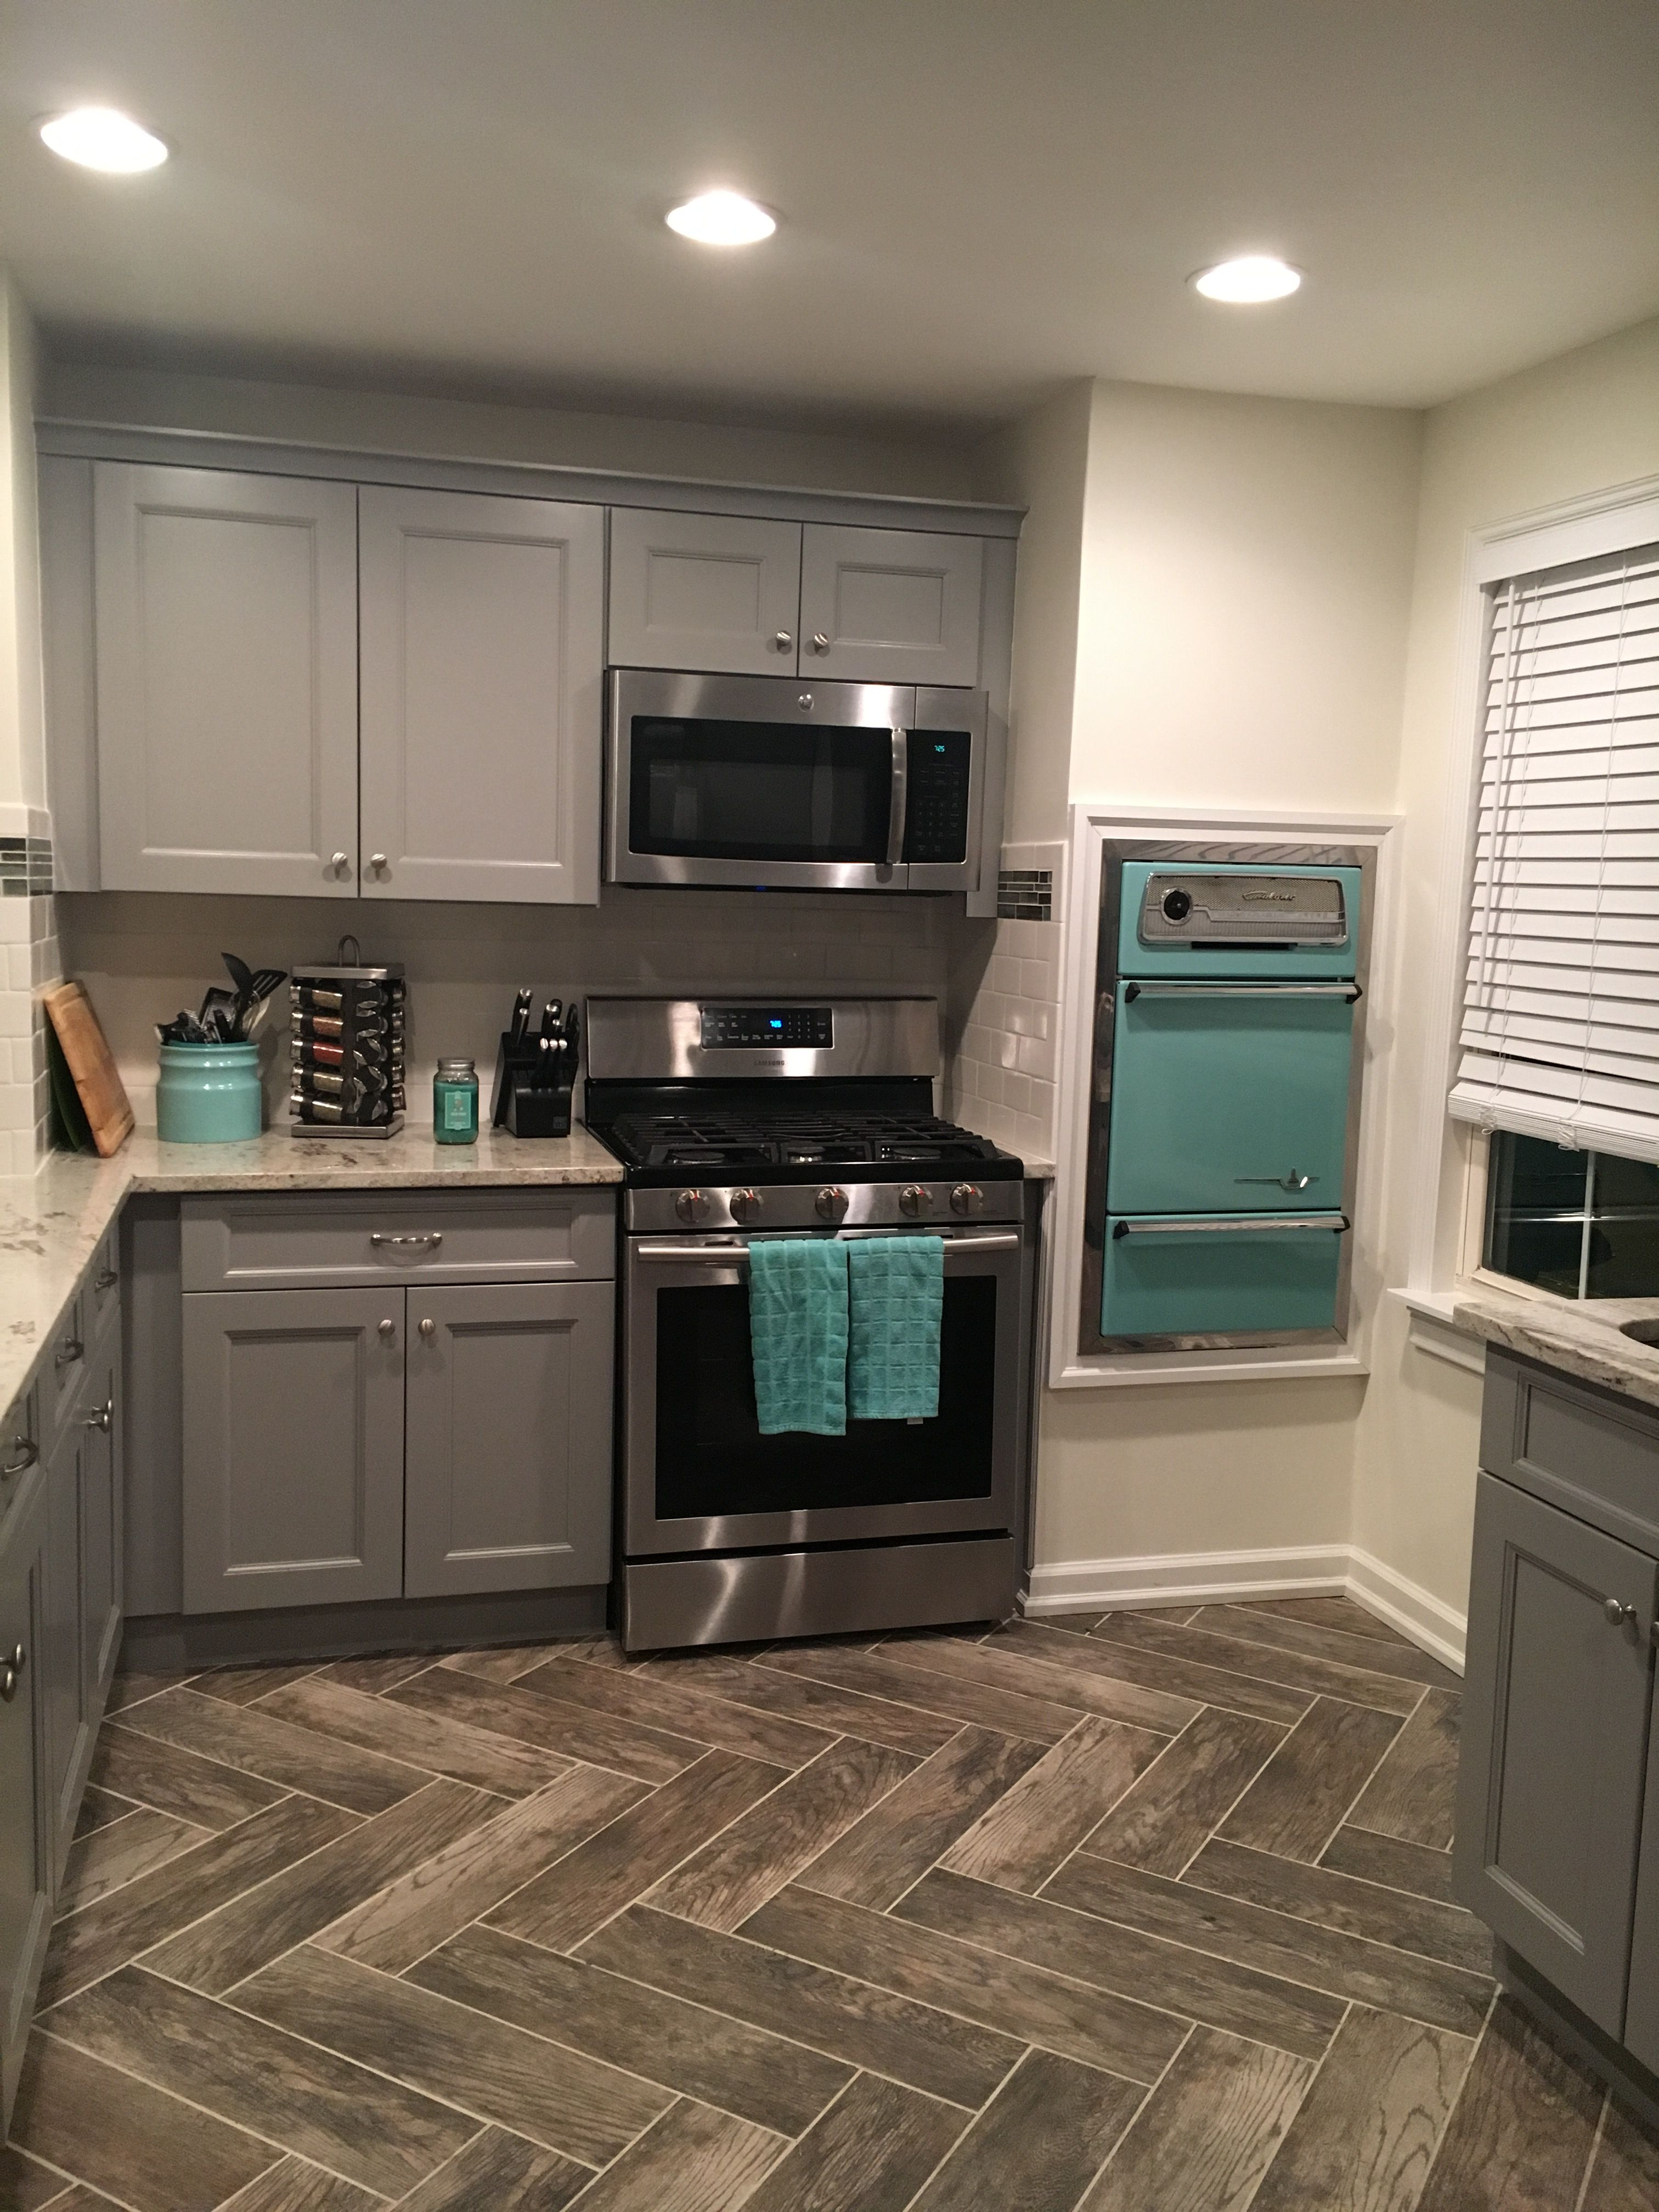 Gray Cabinets Vintage Wall Oven Teal Accents Herringbone Tile Flooring Pattern Black Kitchen Decor Modern Grey Kitchen Teal Kitchen